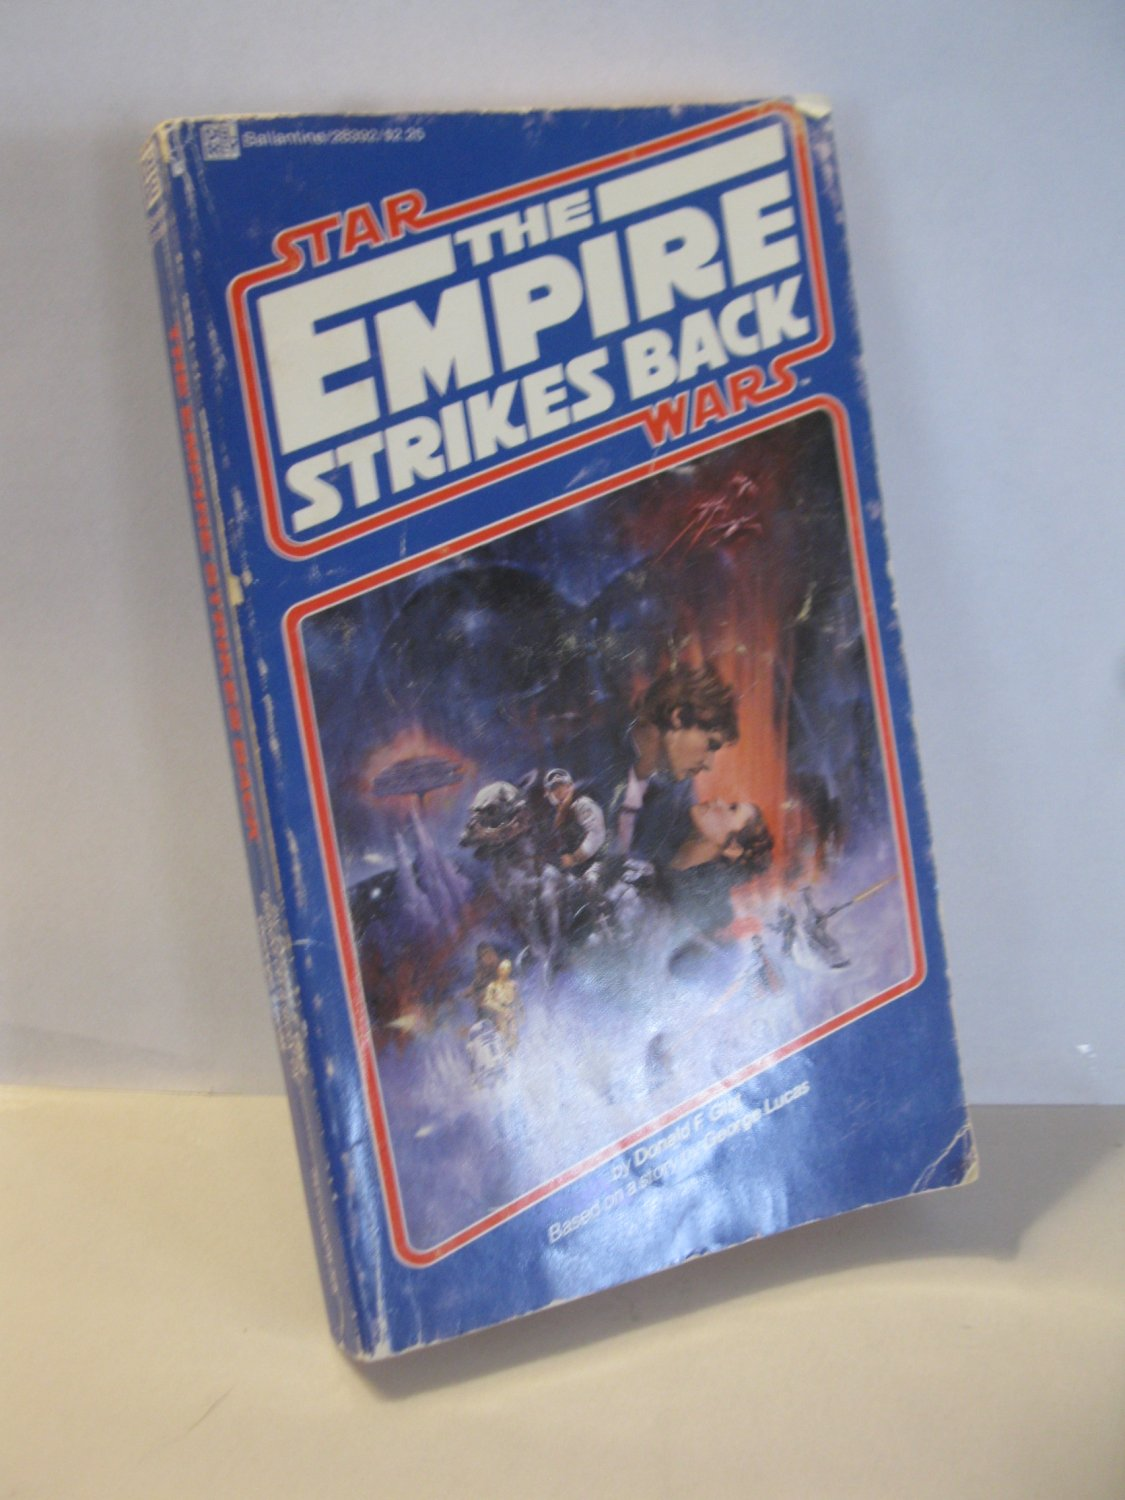 (BX-6) 1980 Star Wars - The Empire Strikes Back p/b book - stated 1st Ed.